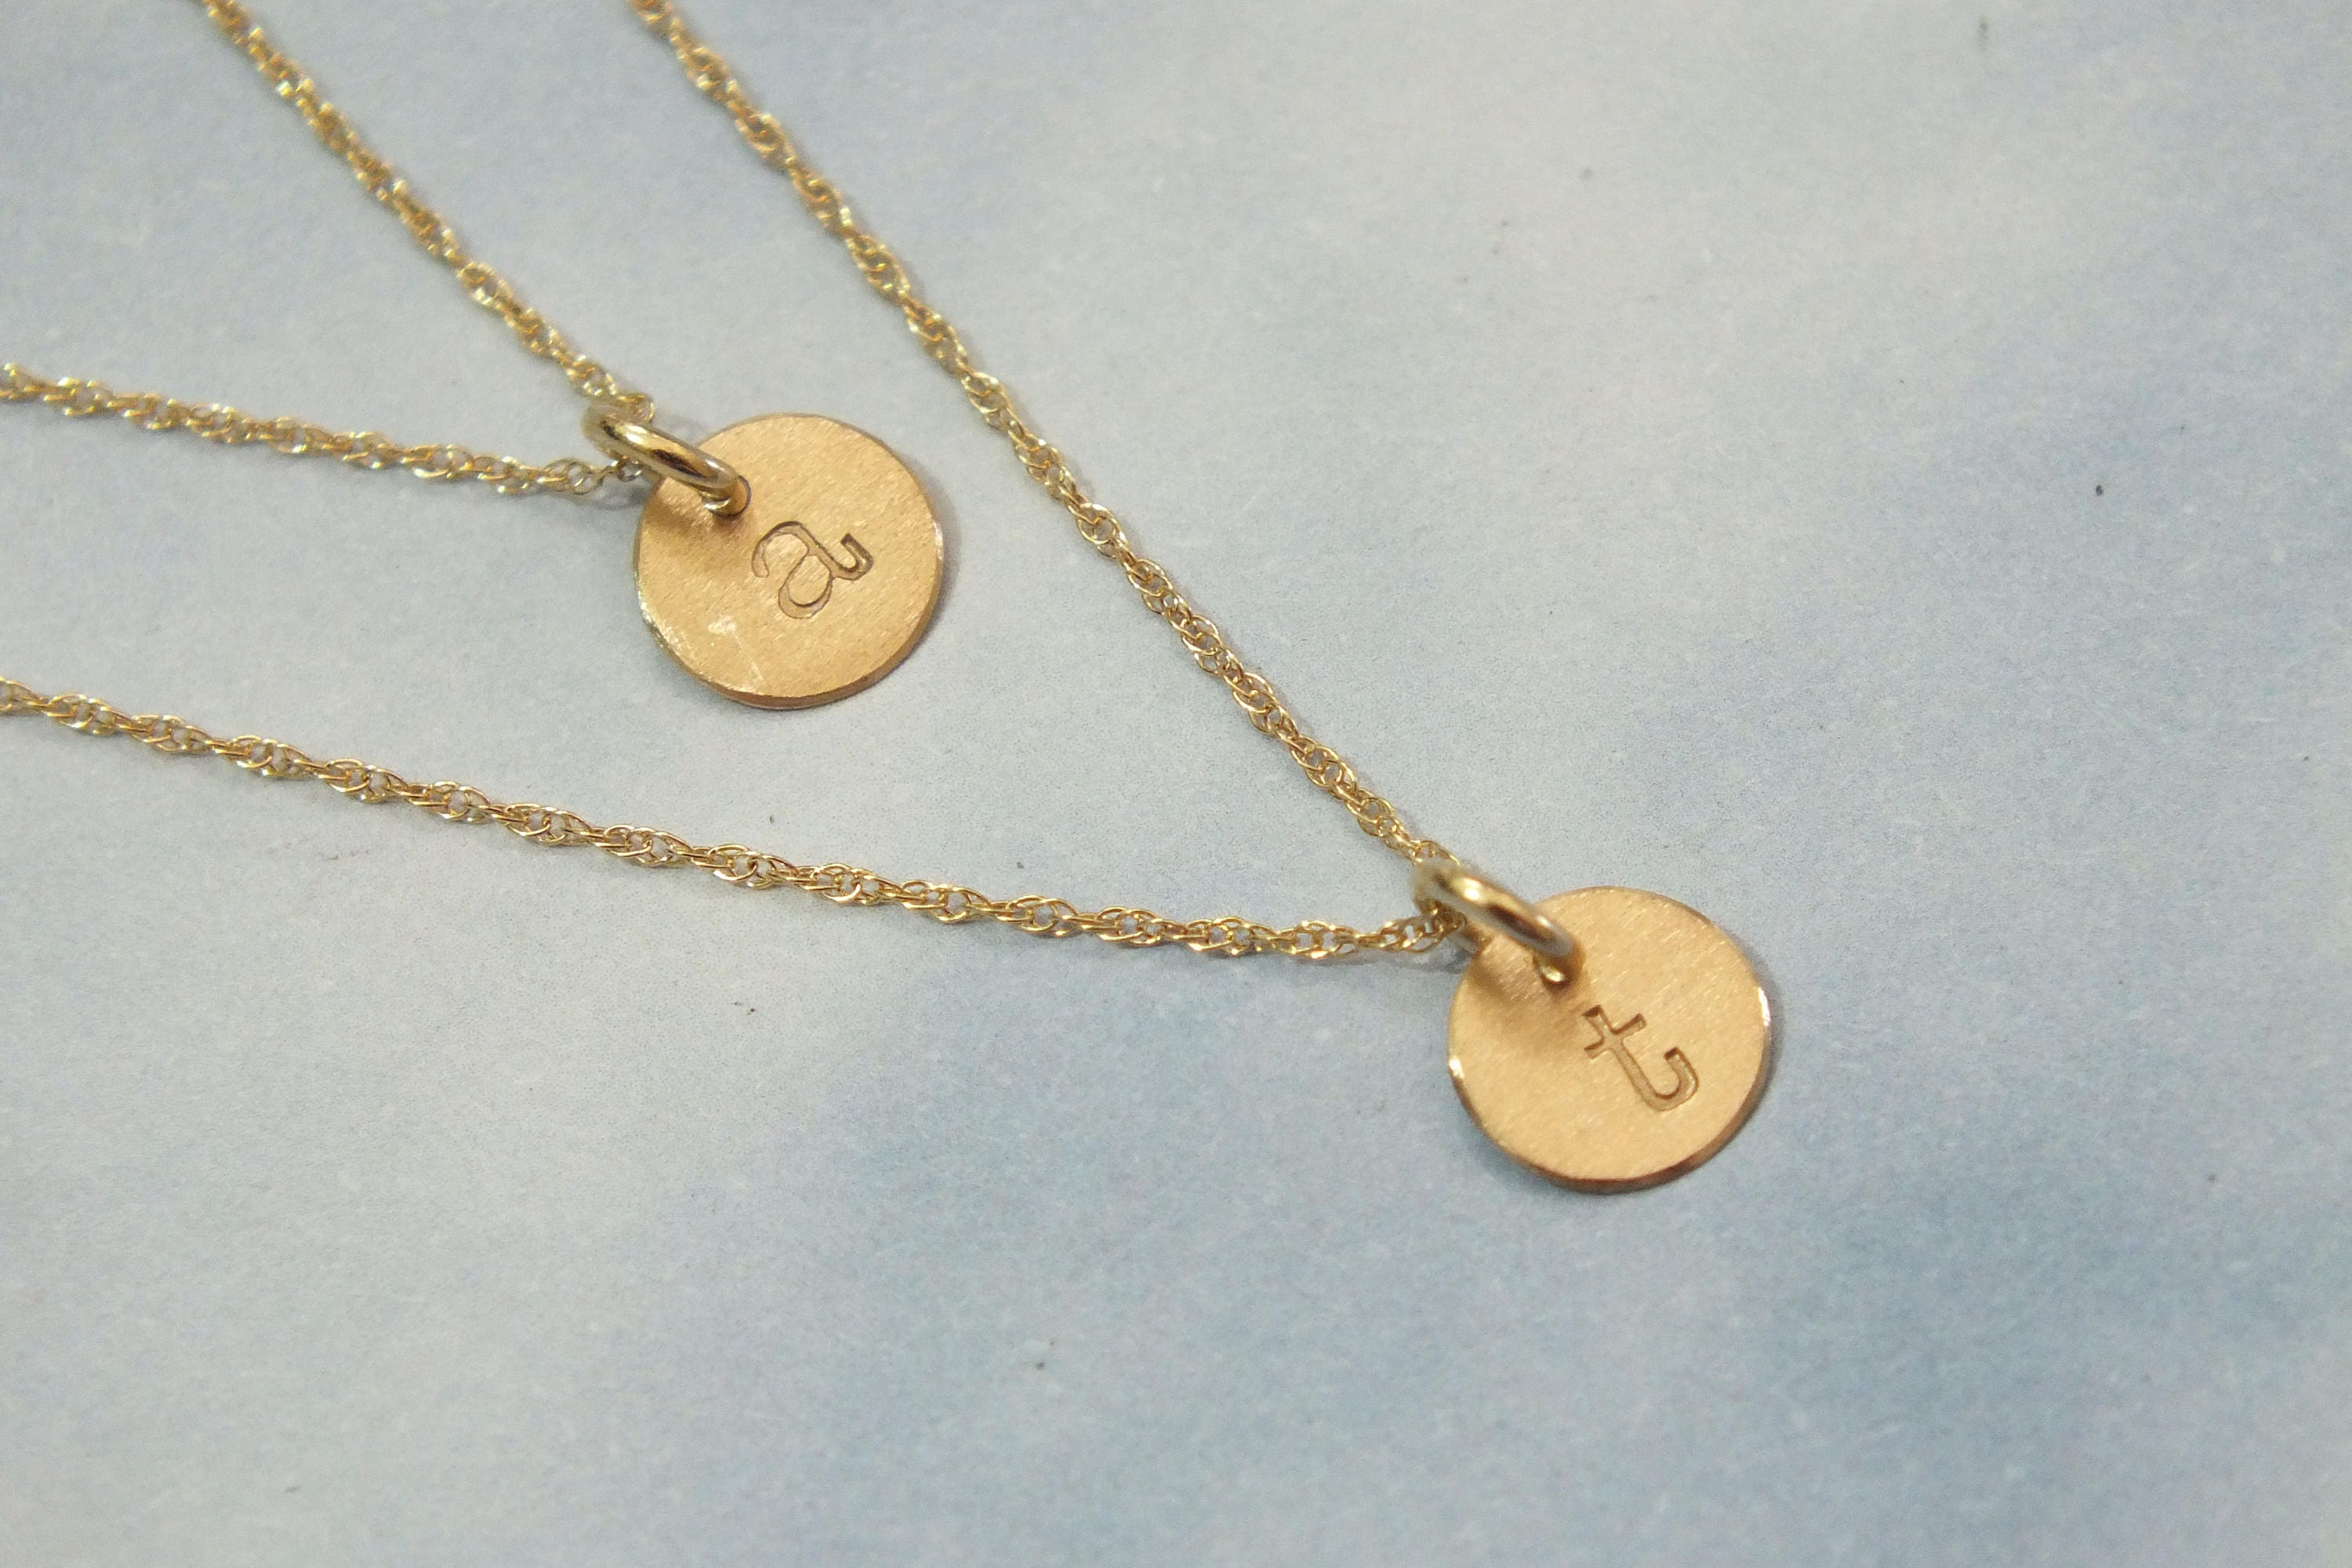 6d68f45b6571c 2 Solid Gold 6mm Initial Necklace, 2 Gold Necklace, Gold Pendant Necklace,  14k Solid Gold Necklace, Personalized Necklace